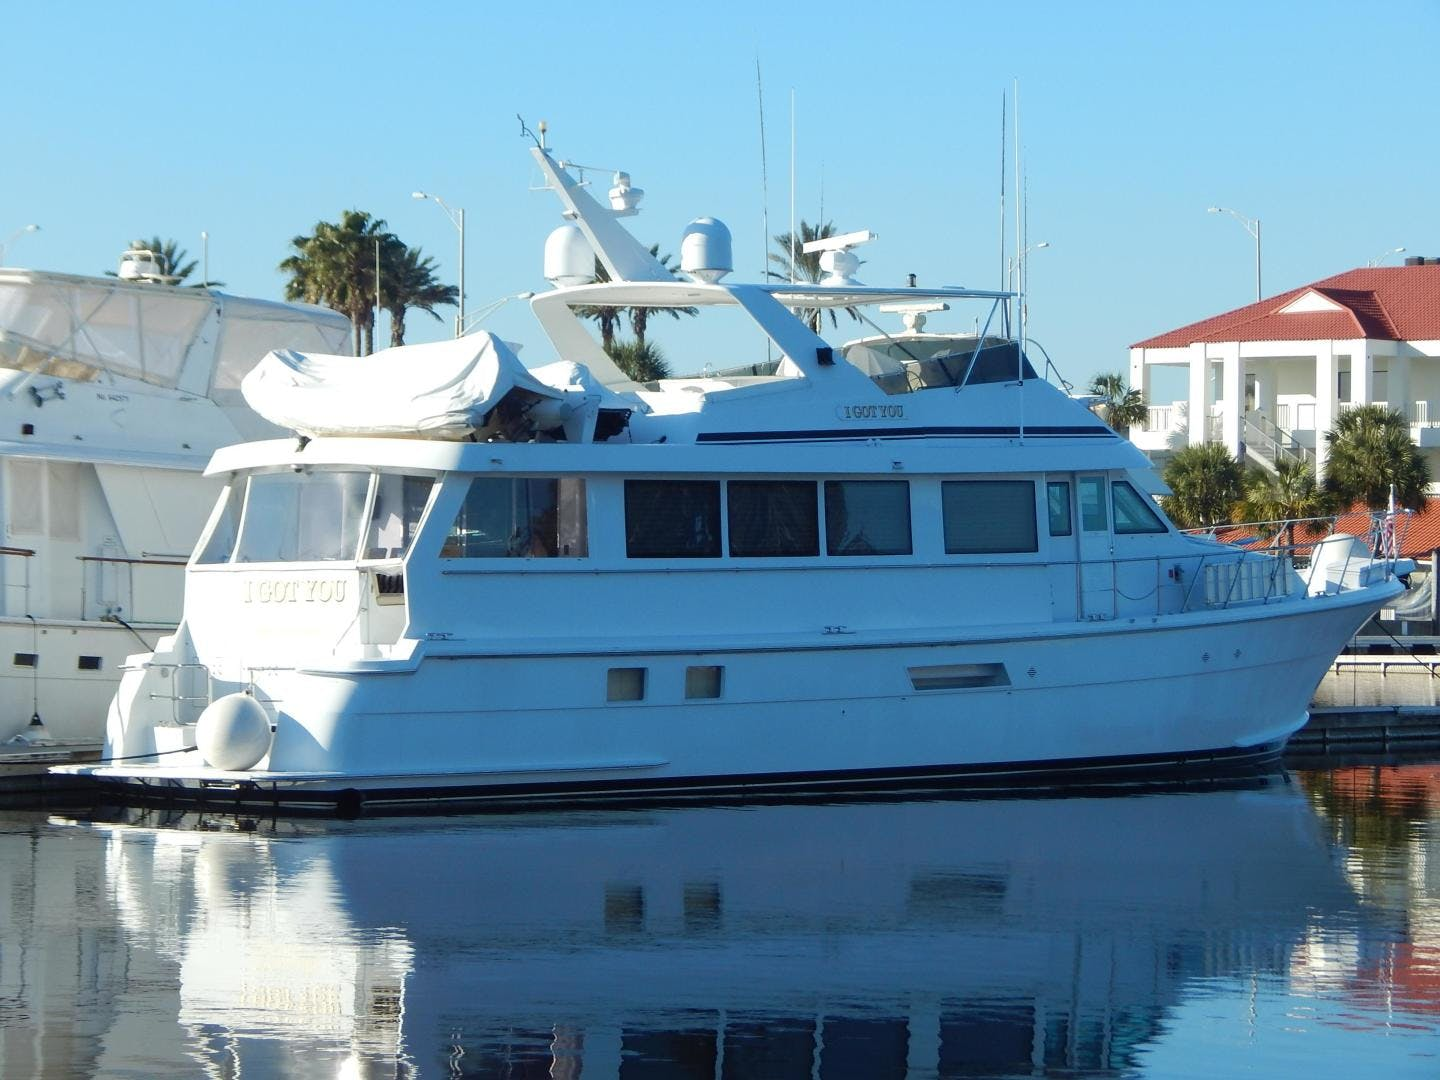 1998 Hatteras 74' Sport Deck Motor Yacht I GOT YOU | Picture 2 of 40